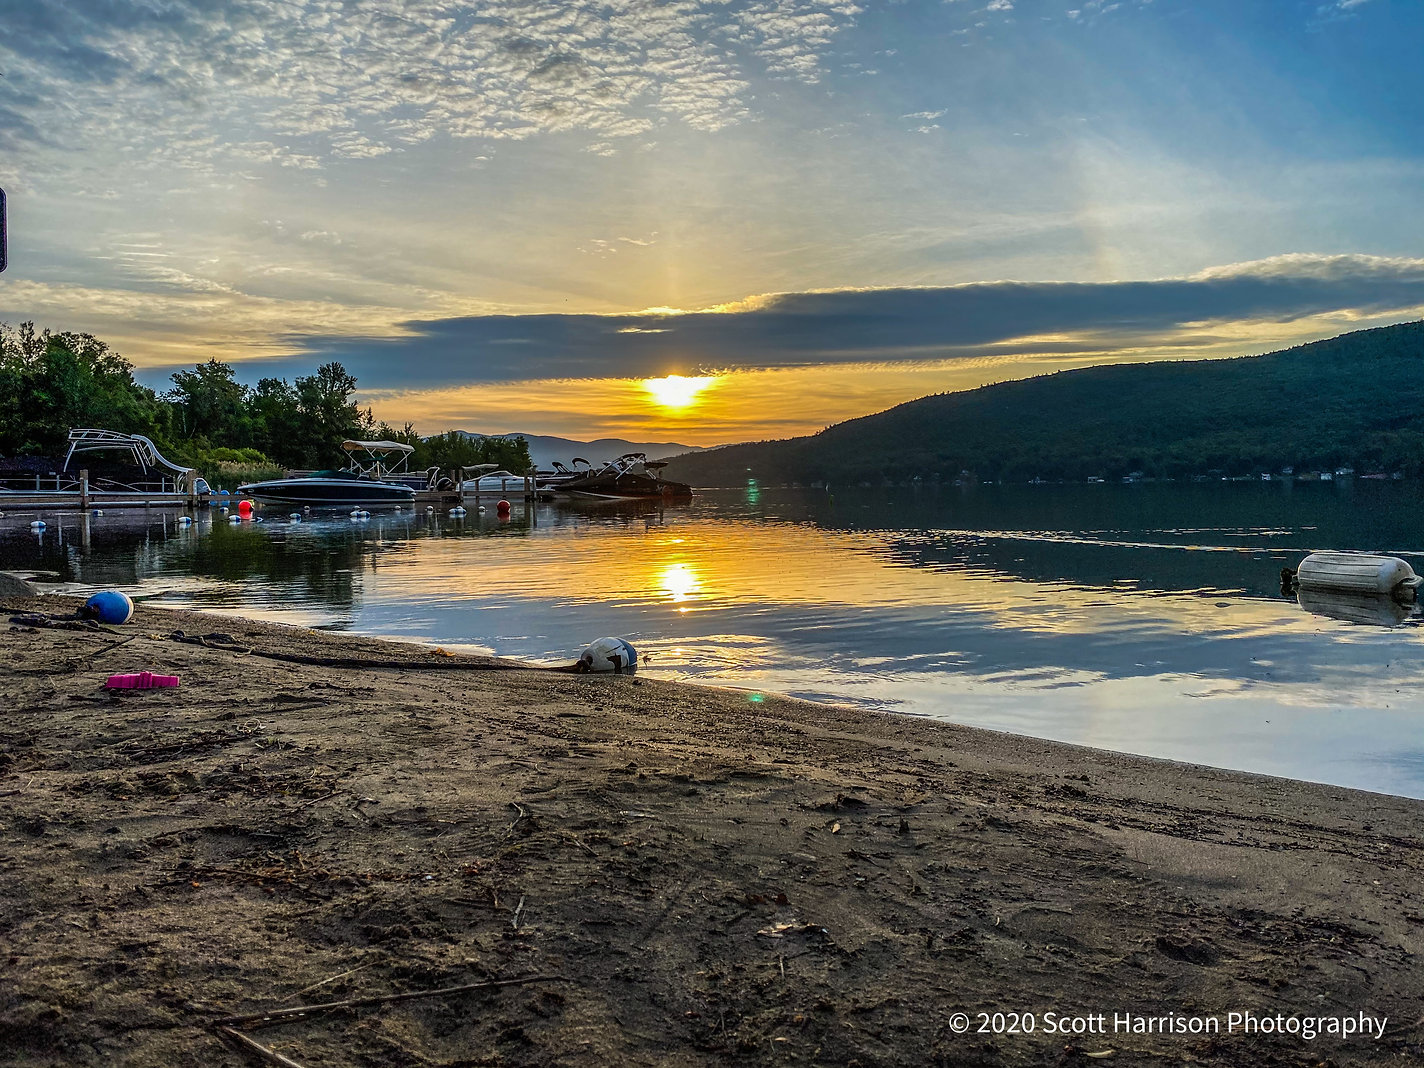 sunrise over the lake george water from the beach at the sundowner on lakeg george with the adirondack mountains in the background